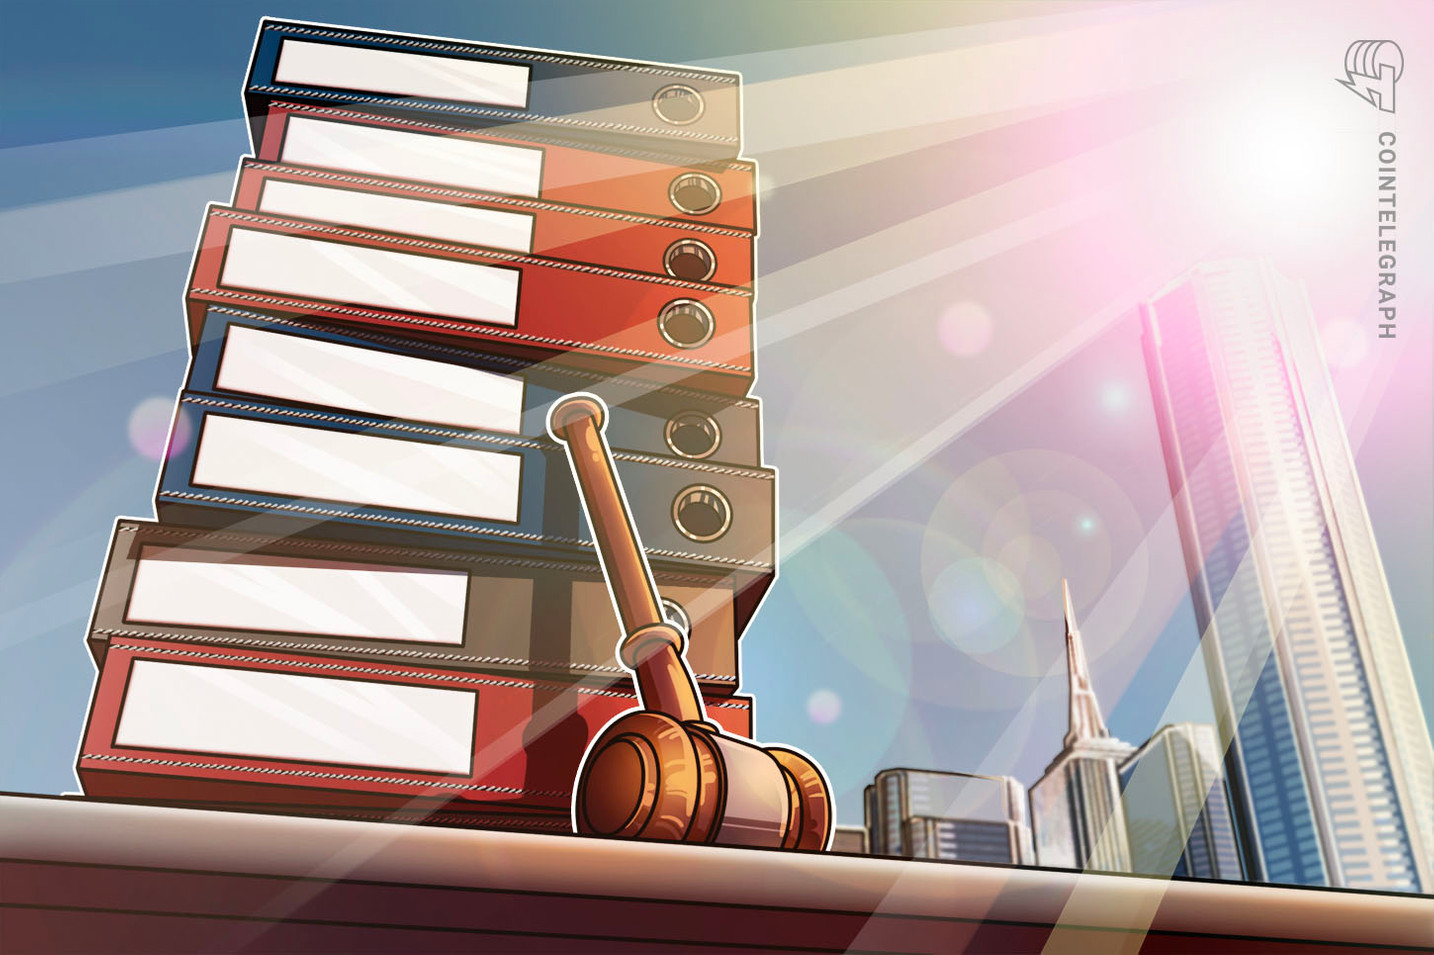 Bittrex and Poloniex Targeted in Class-Action Crypto Manipulation Suit